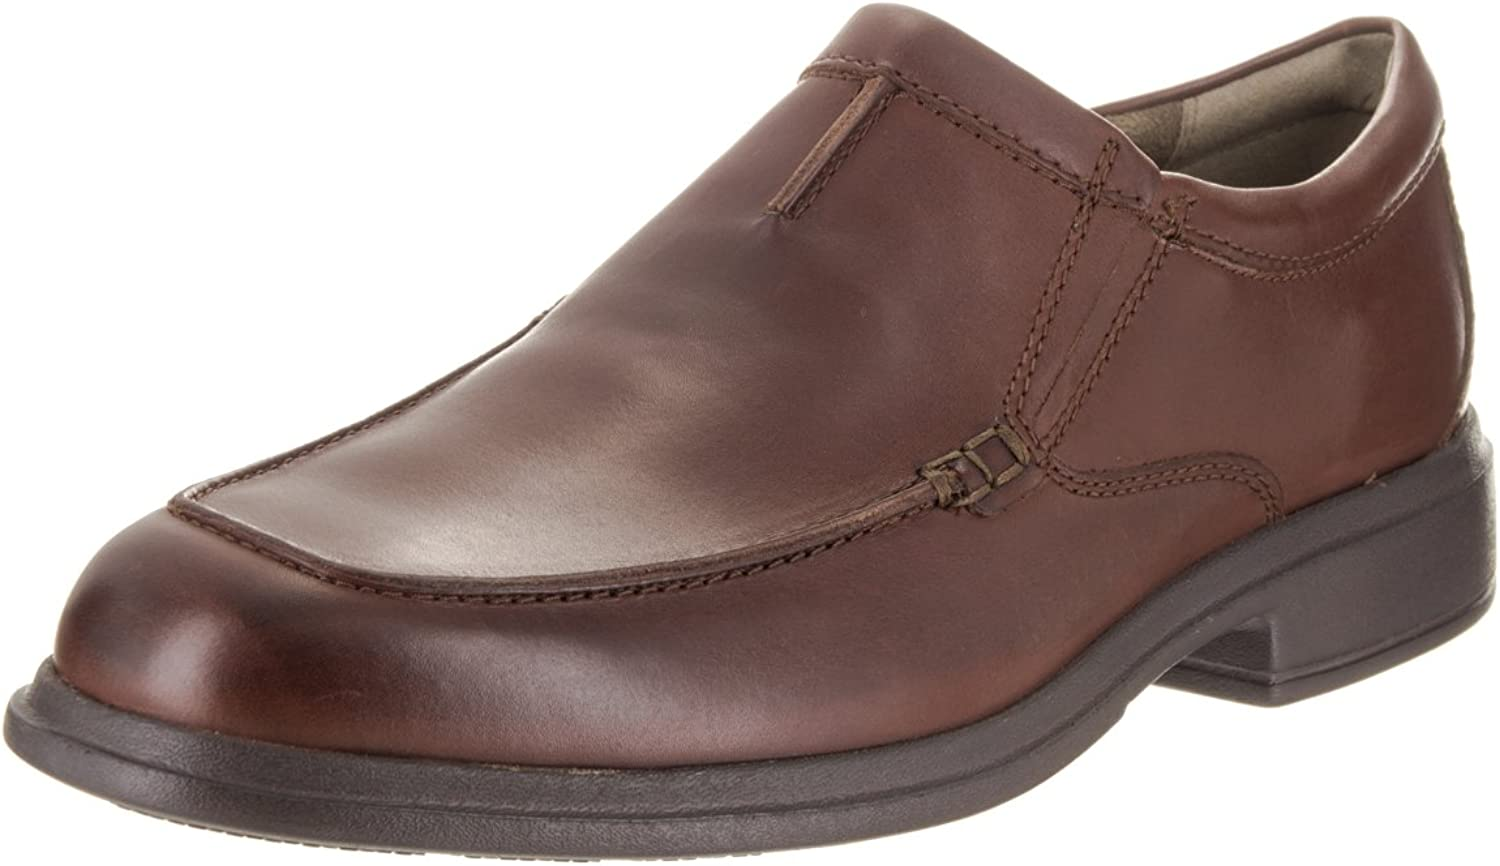 Bostonian Men's Tifton Step Brown Loafers & Slip-Ons shoes 7.5 Men US